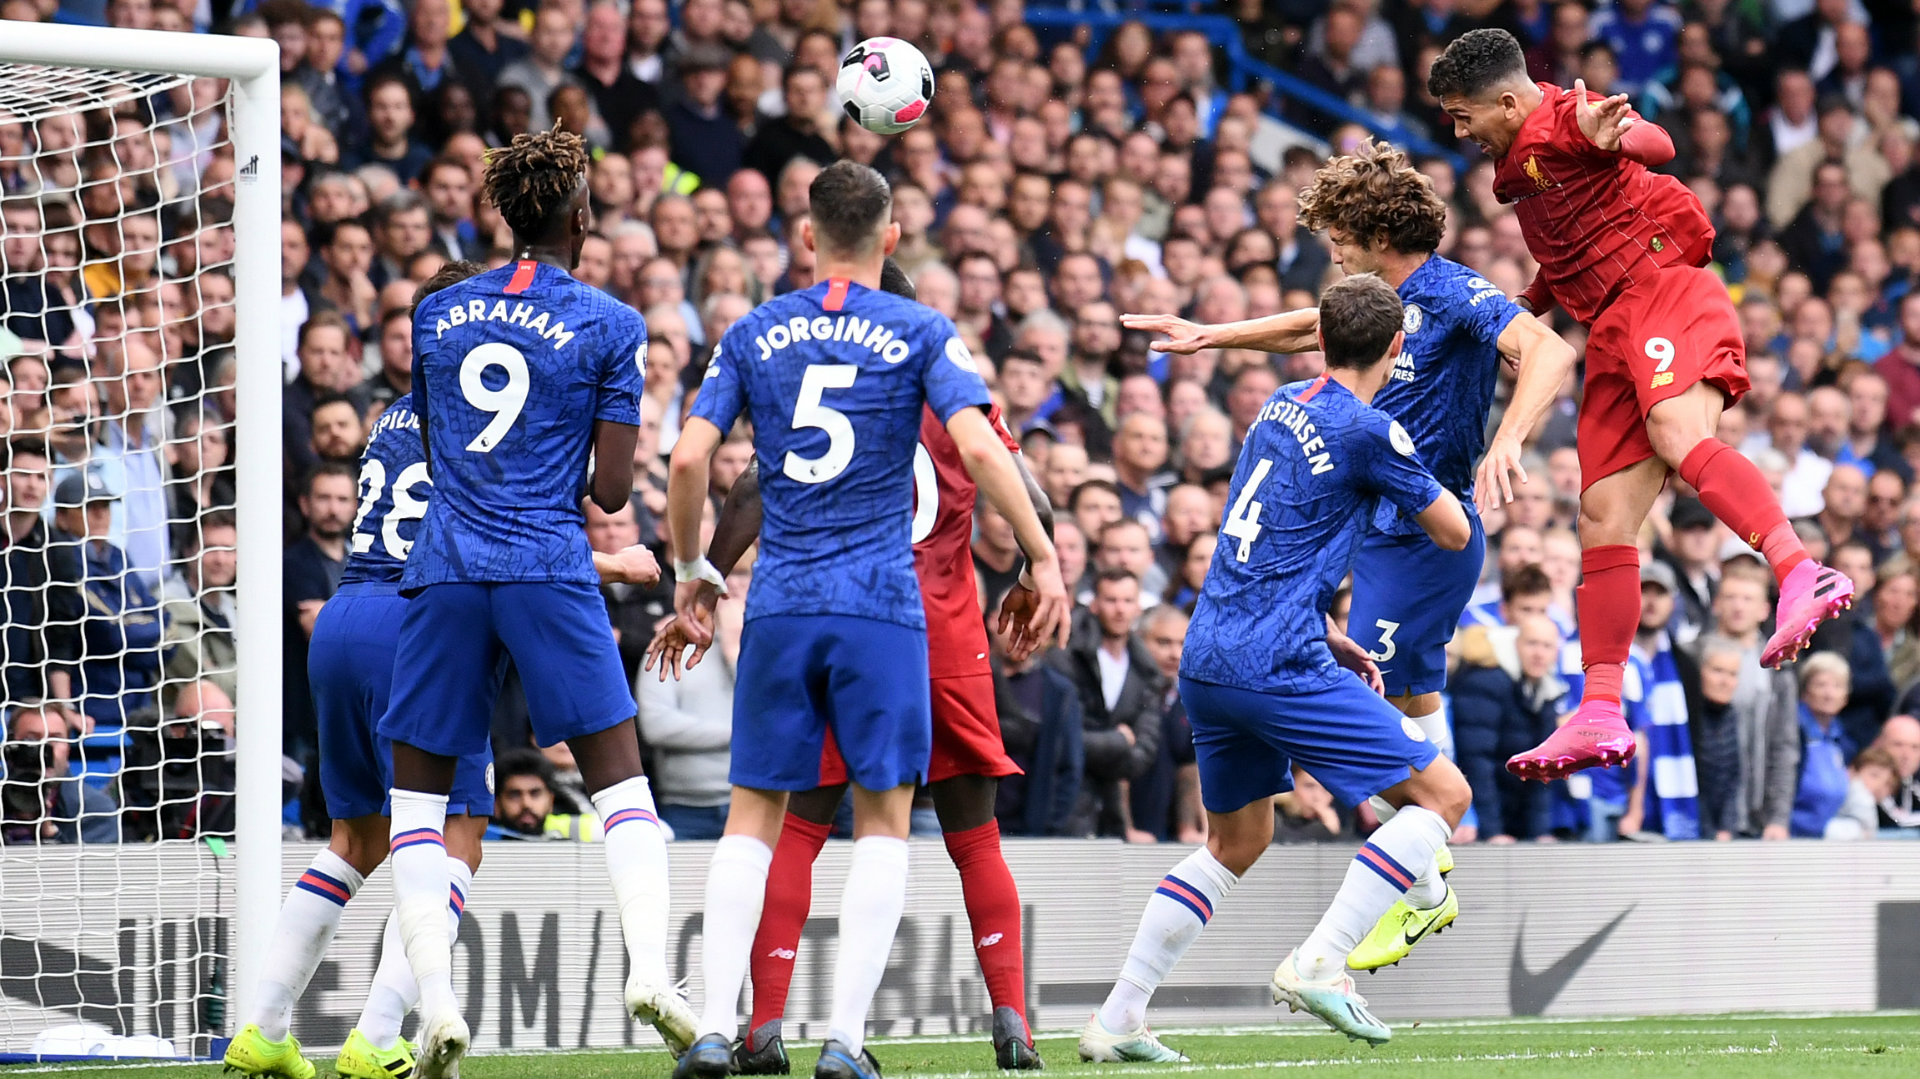 Chelsea liverpool betting preview betting odds explained 15/25 in simplest form